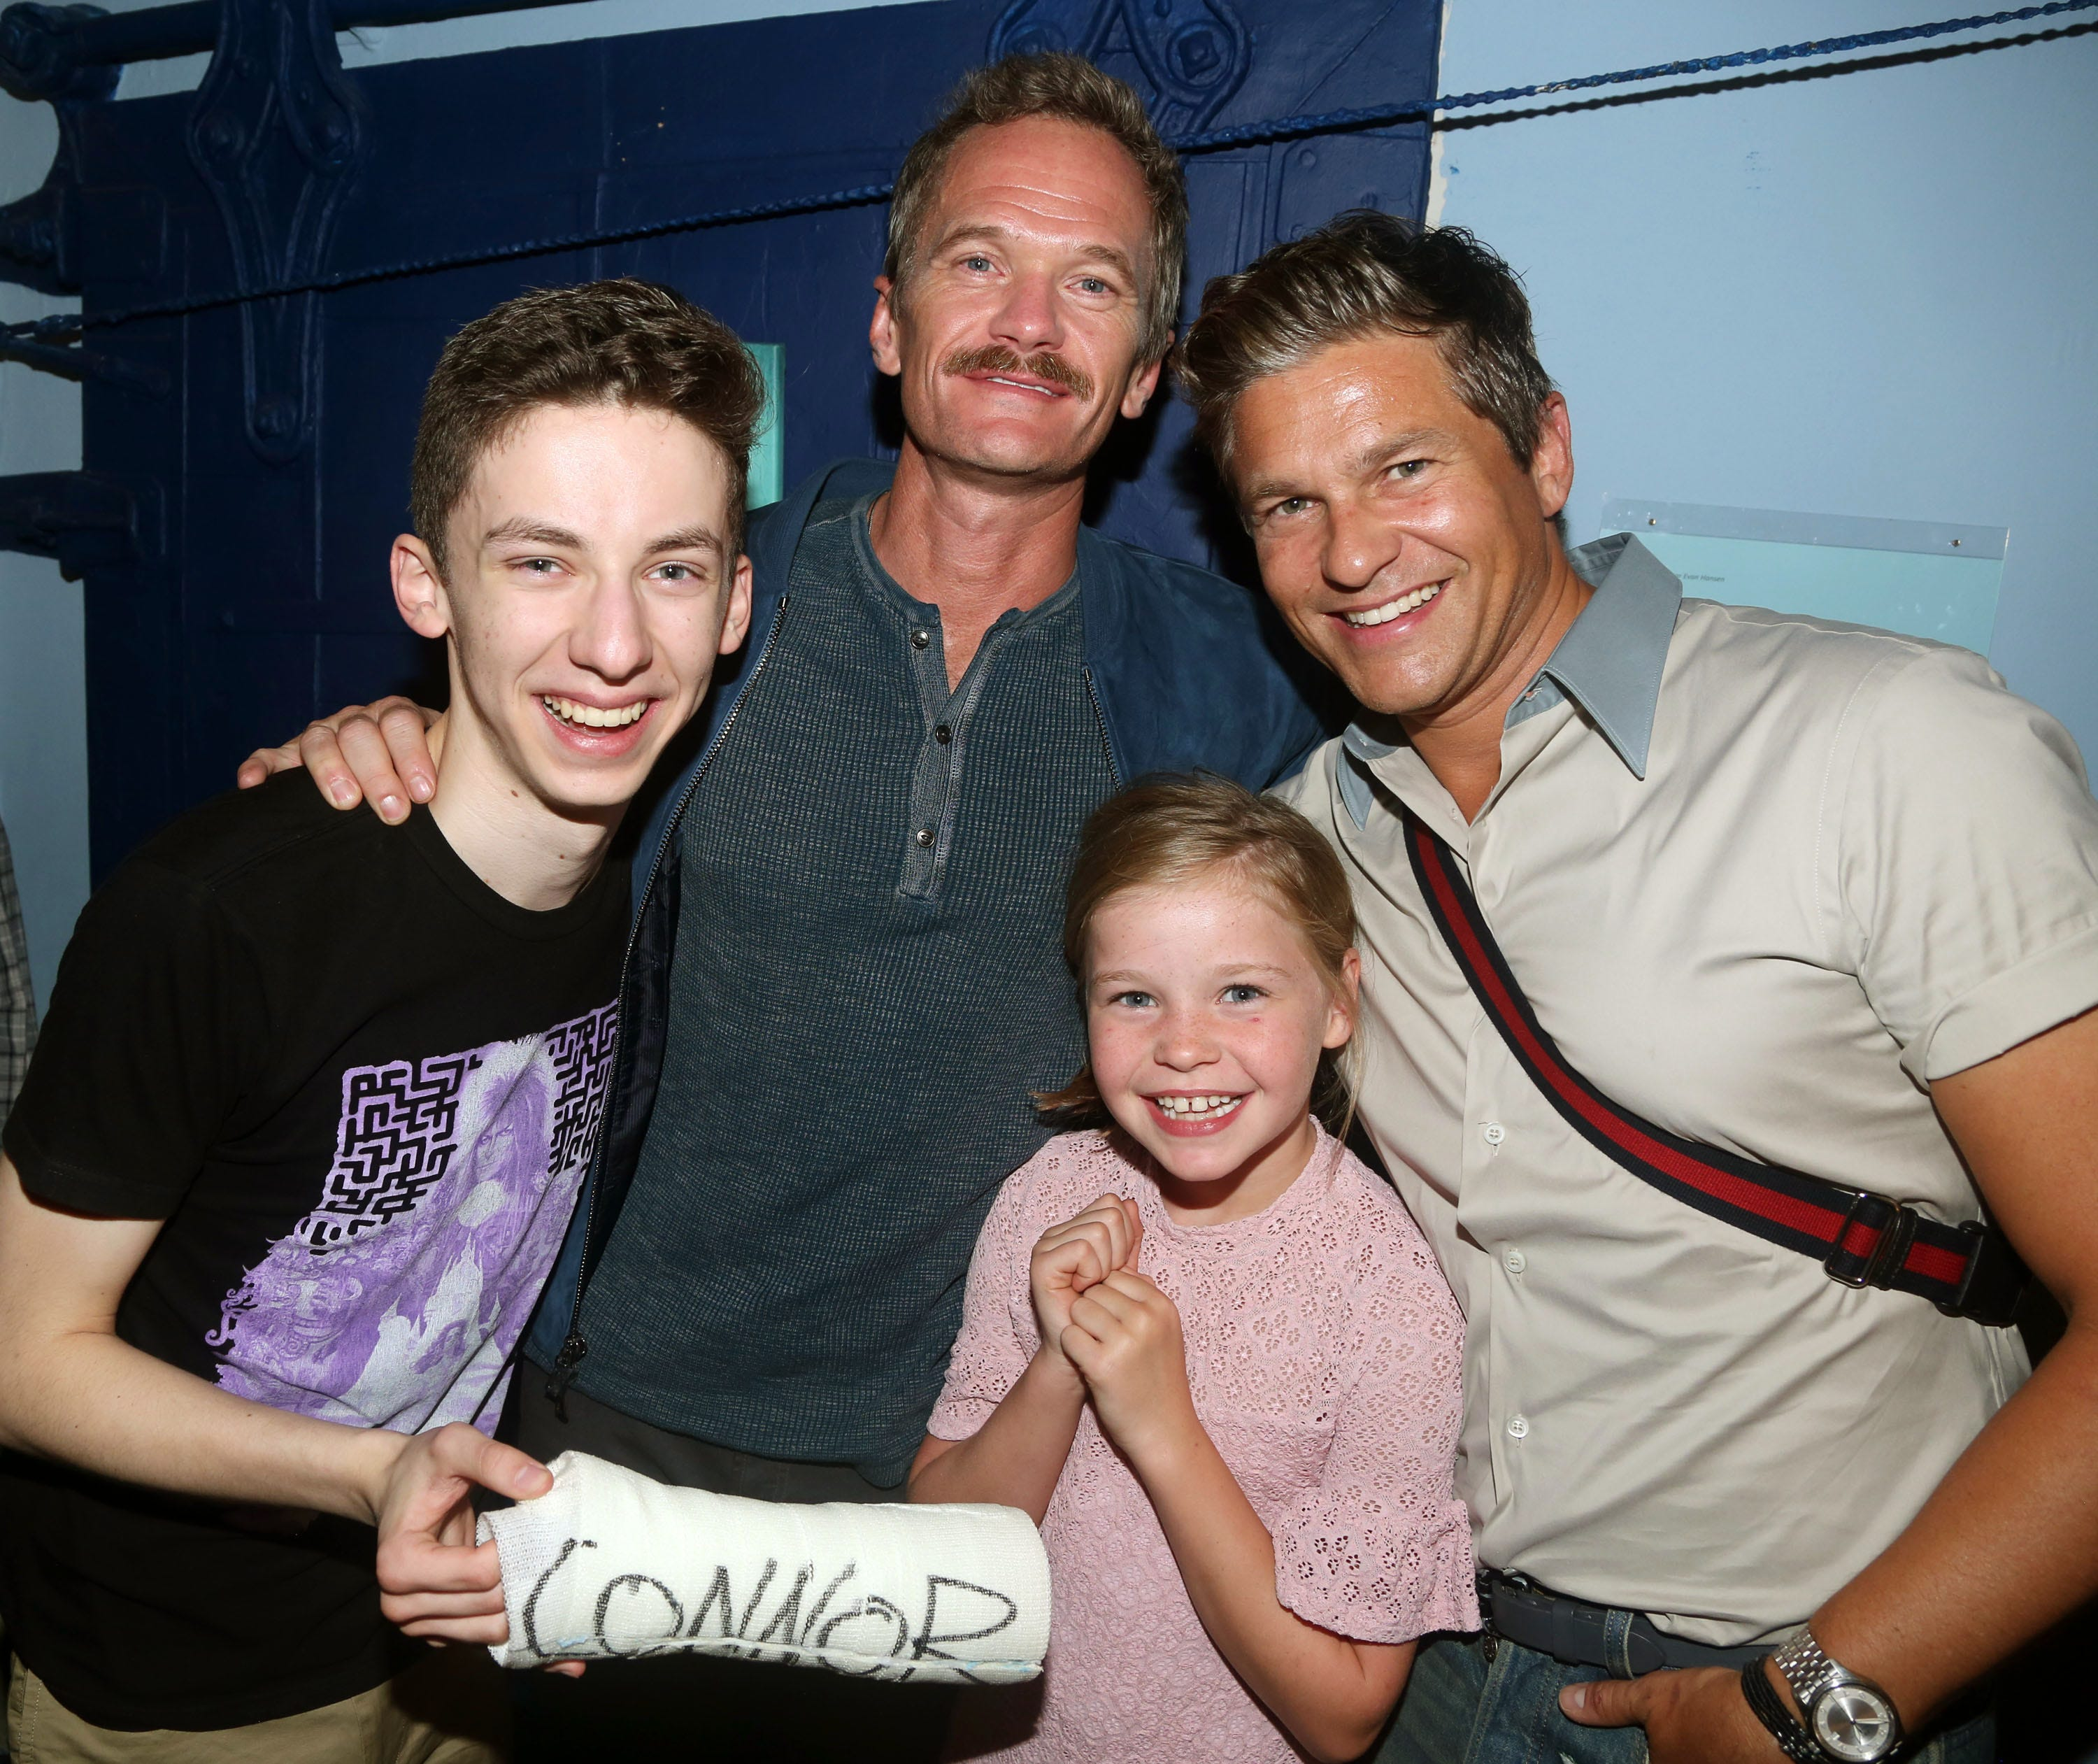 Neil Patrick Harris posts video from Medieval Times in Lyndhurst NJ